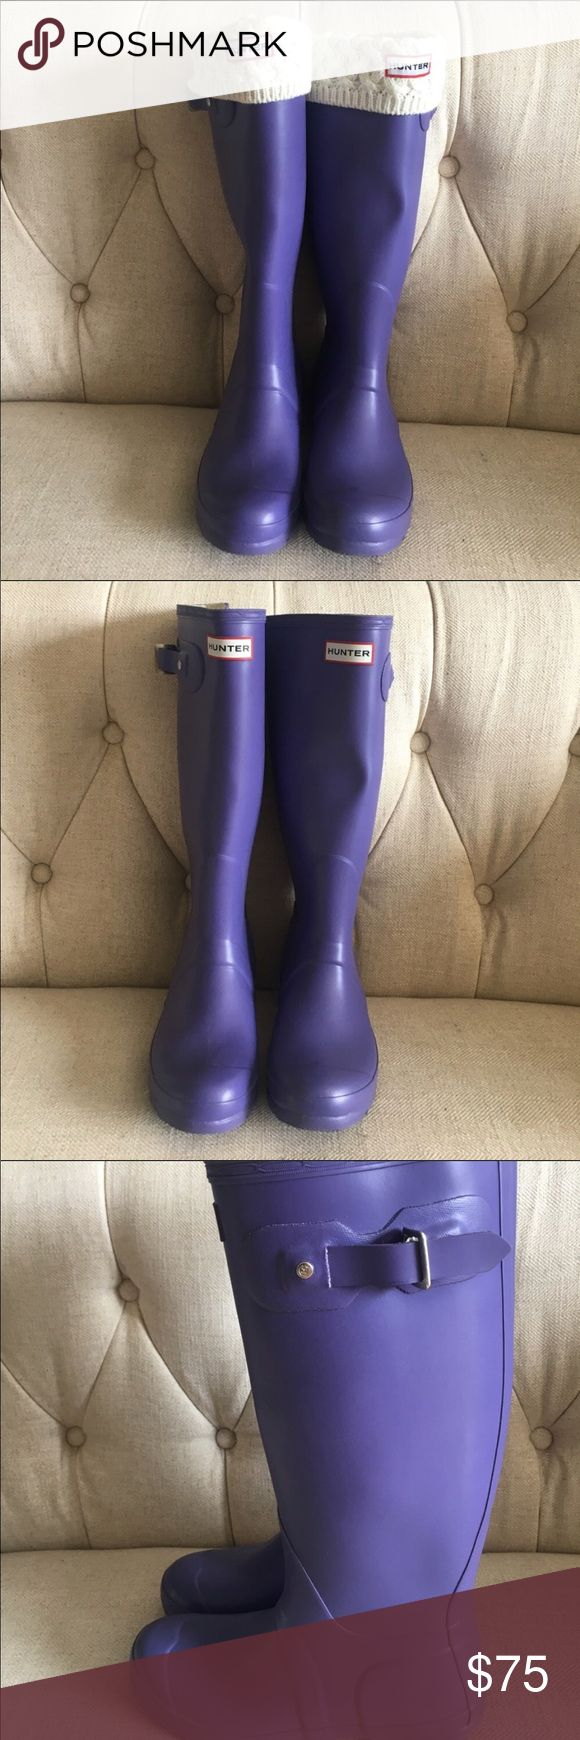 Hunter Rain Boots The perfect stylish rain boots to get you through the rainy days of winter and spring. These boots were only worn twice and are almost brand new! Not to mention the color is in line with Pantone's 2018 color ultra violet! Hunter Shoes Winter & Rain Boots